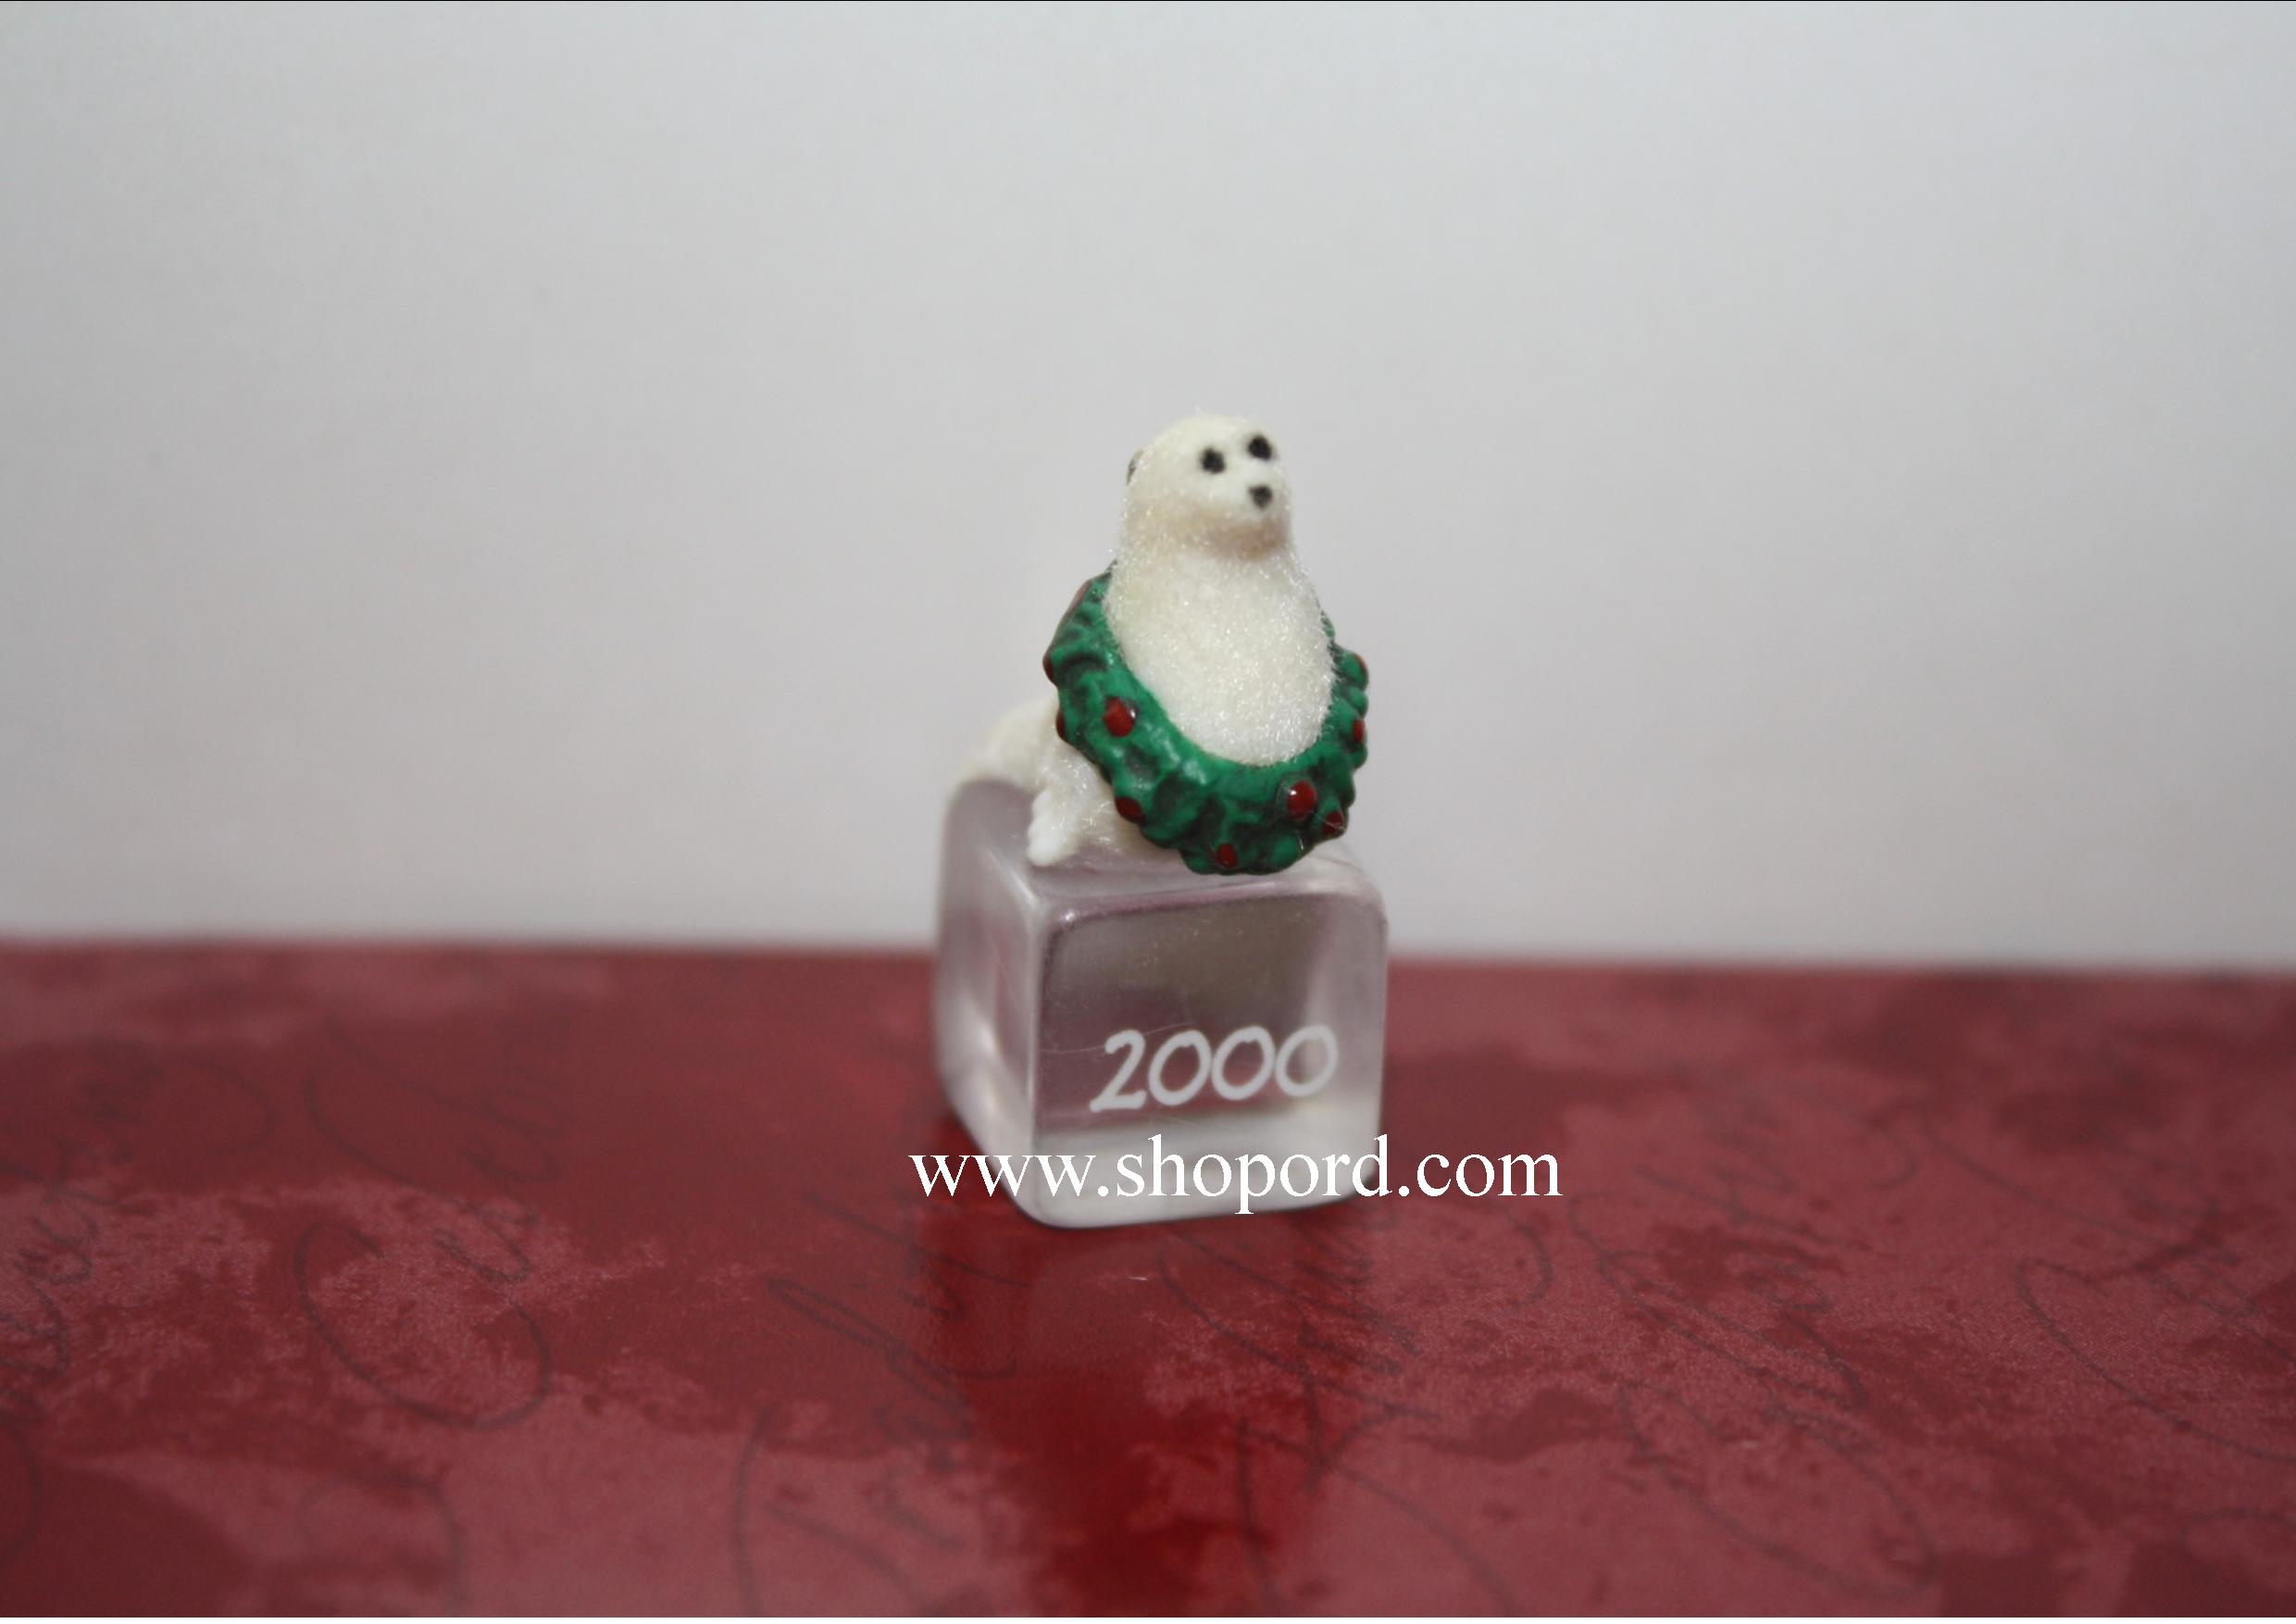 Hallmark 2000 Ice Block Buddies Miniature Ornament 1st In The Series QXM6011